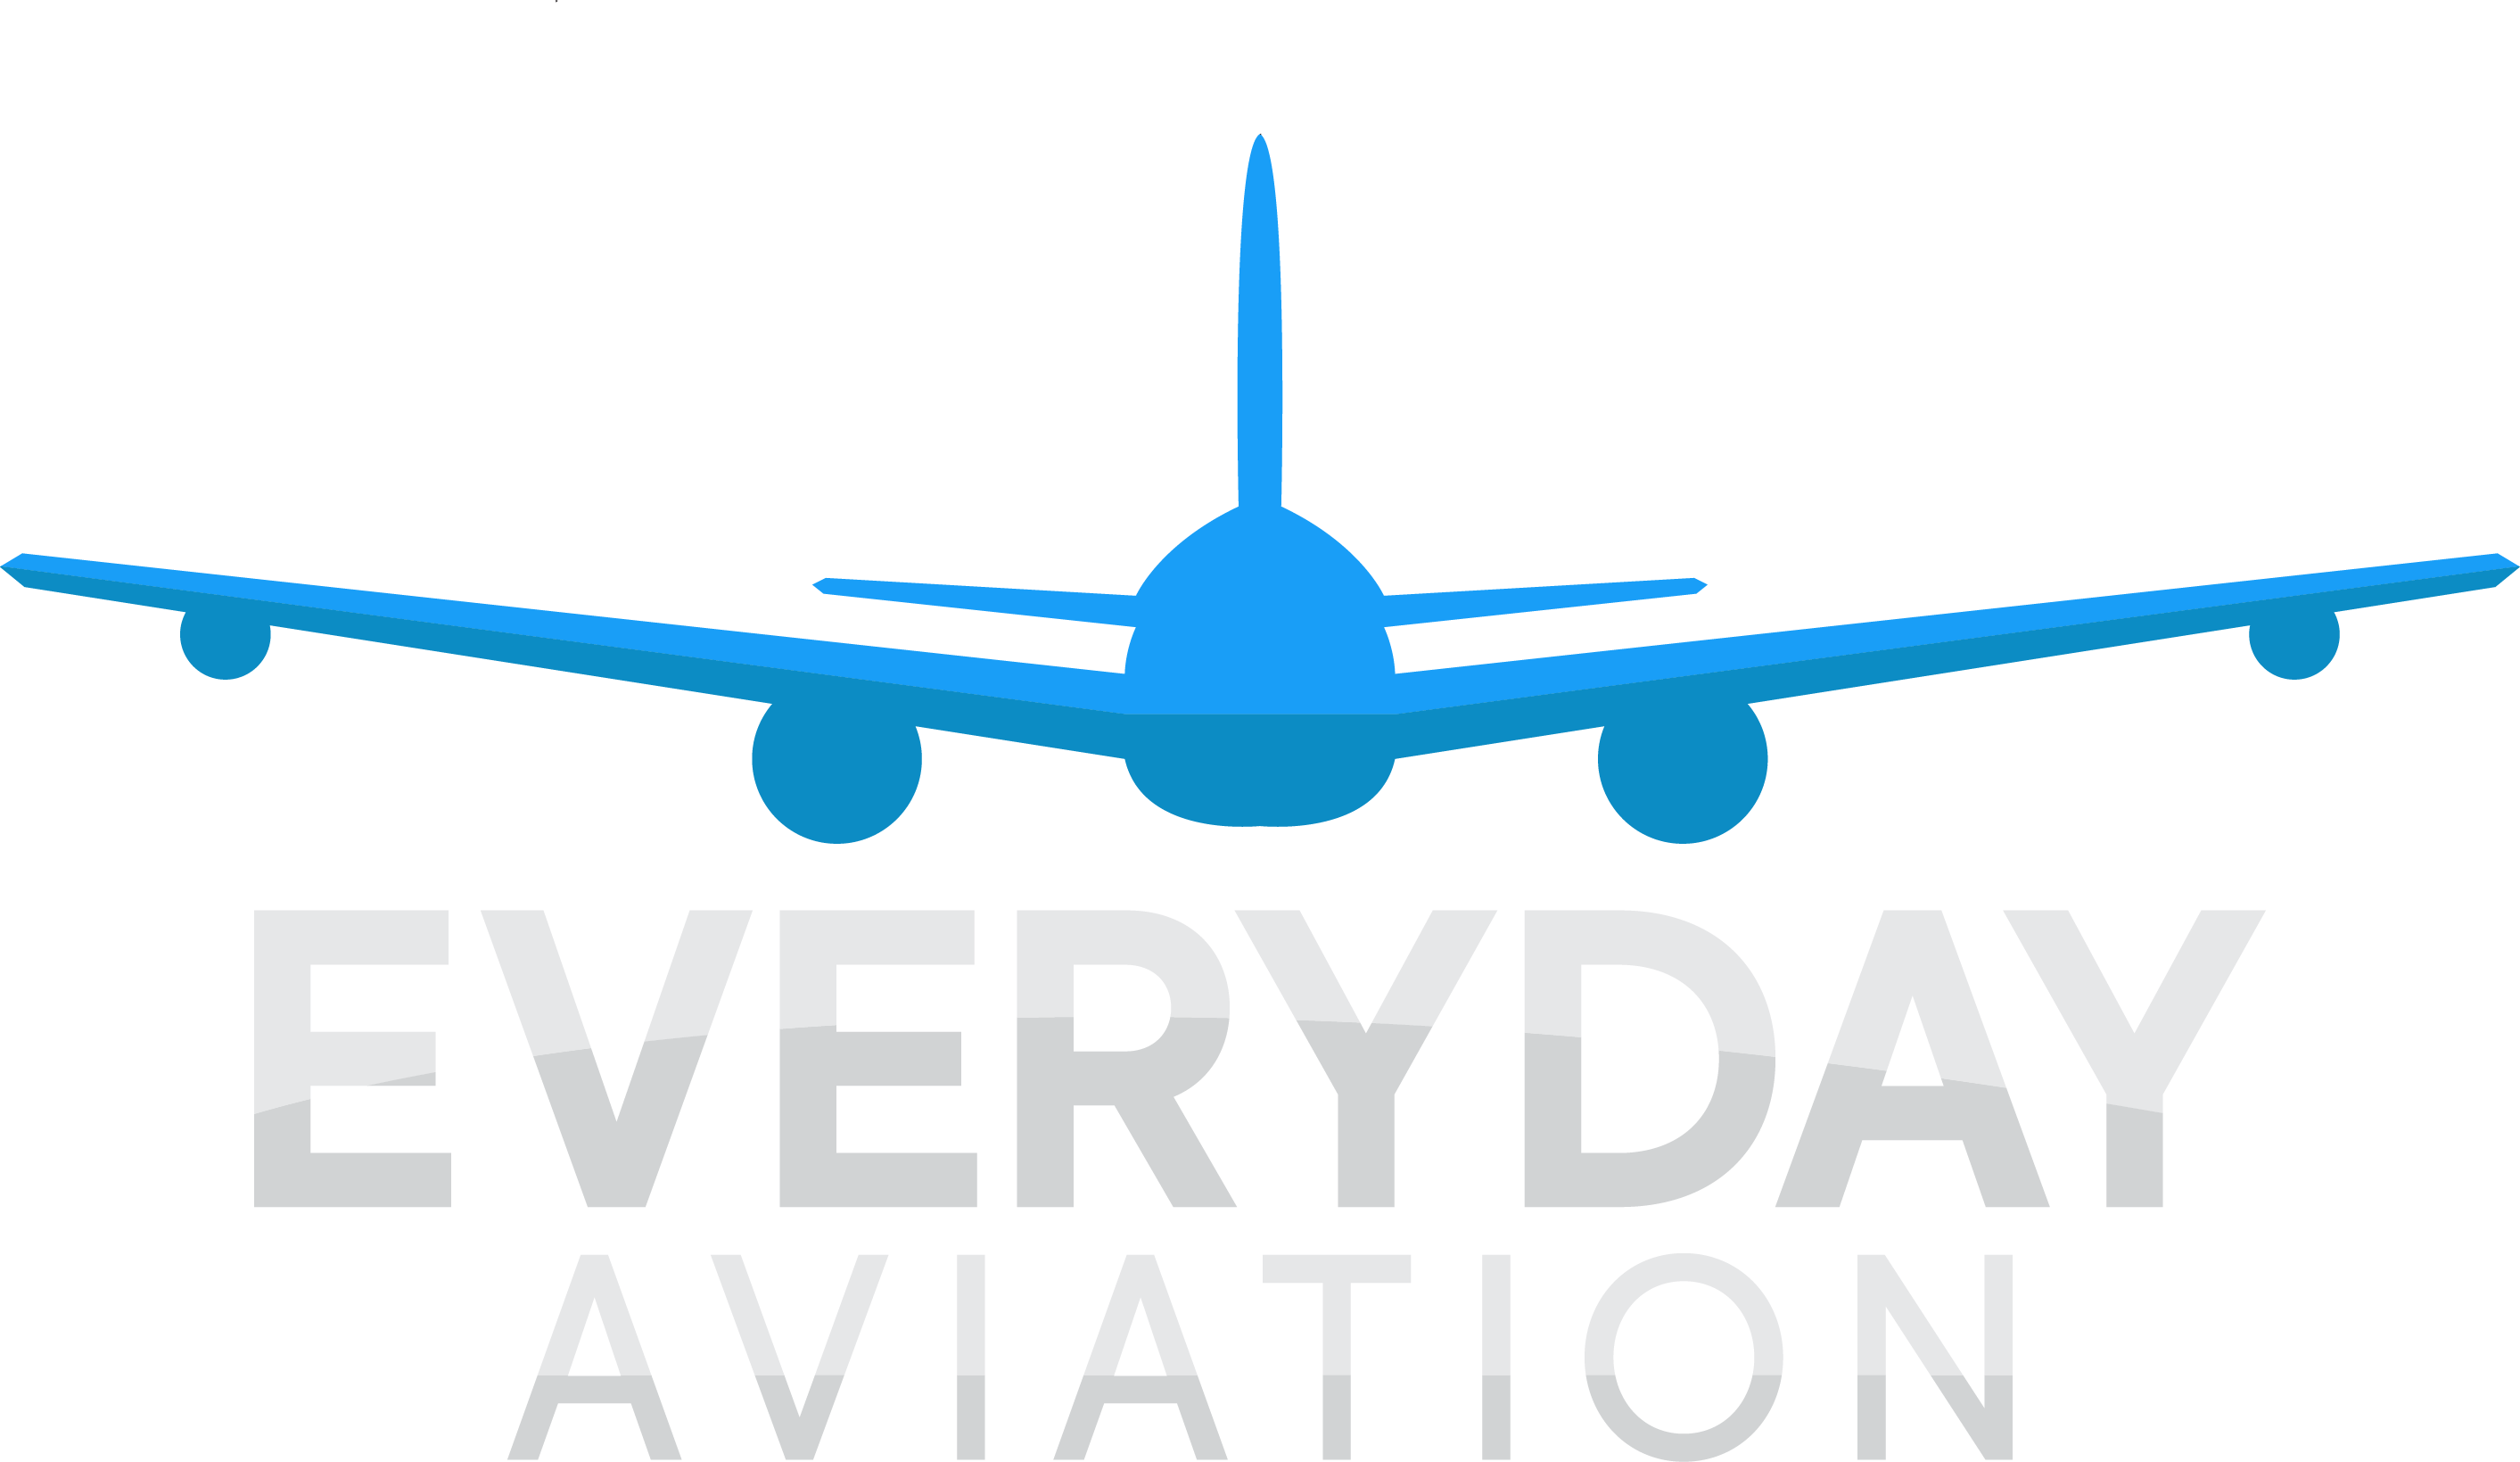 Everyday Aviation